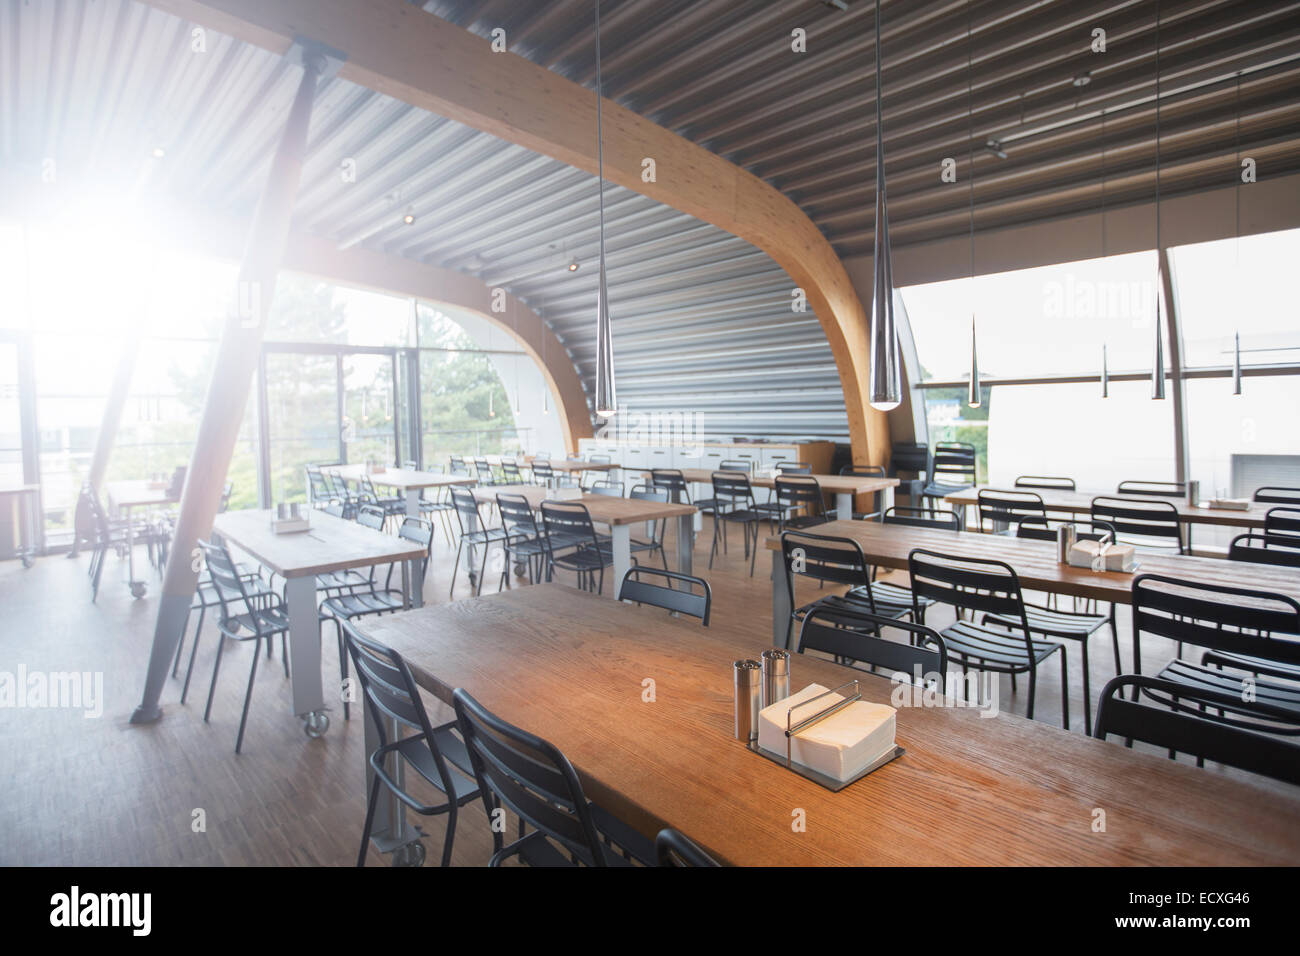 Tables vides in office cafeteria Photo Stock